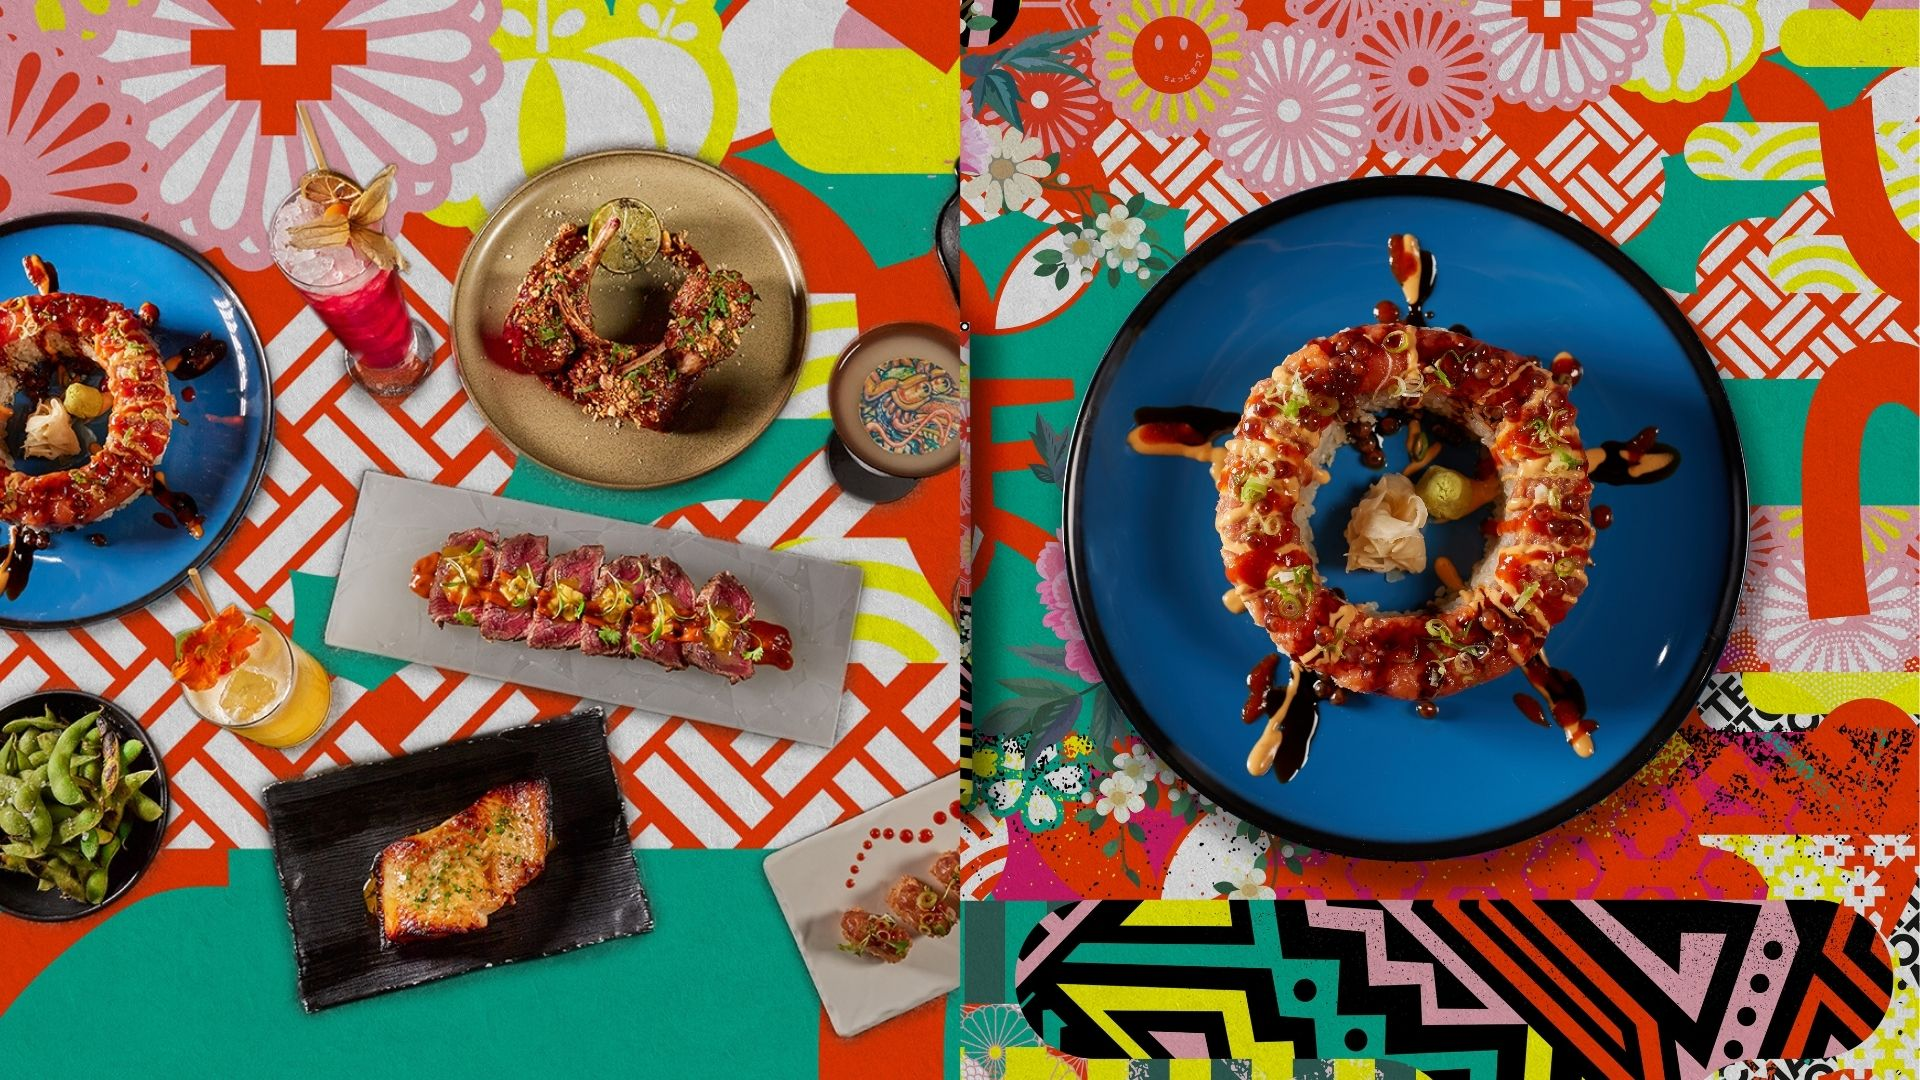 The Best Brand New Brunches in London - New Harajuku Brunch at Chotto Soho every Saturday 12-4pm